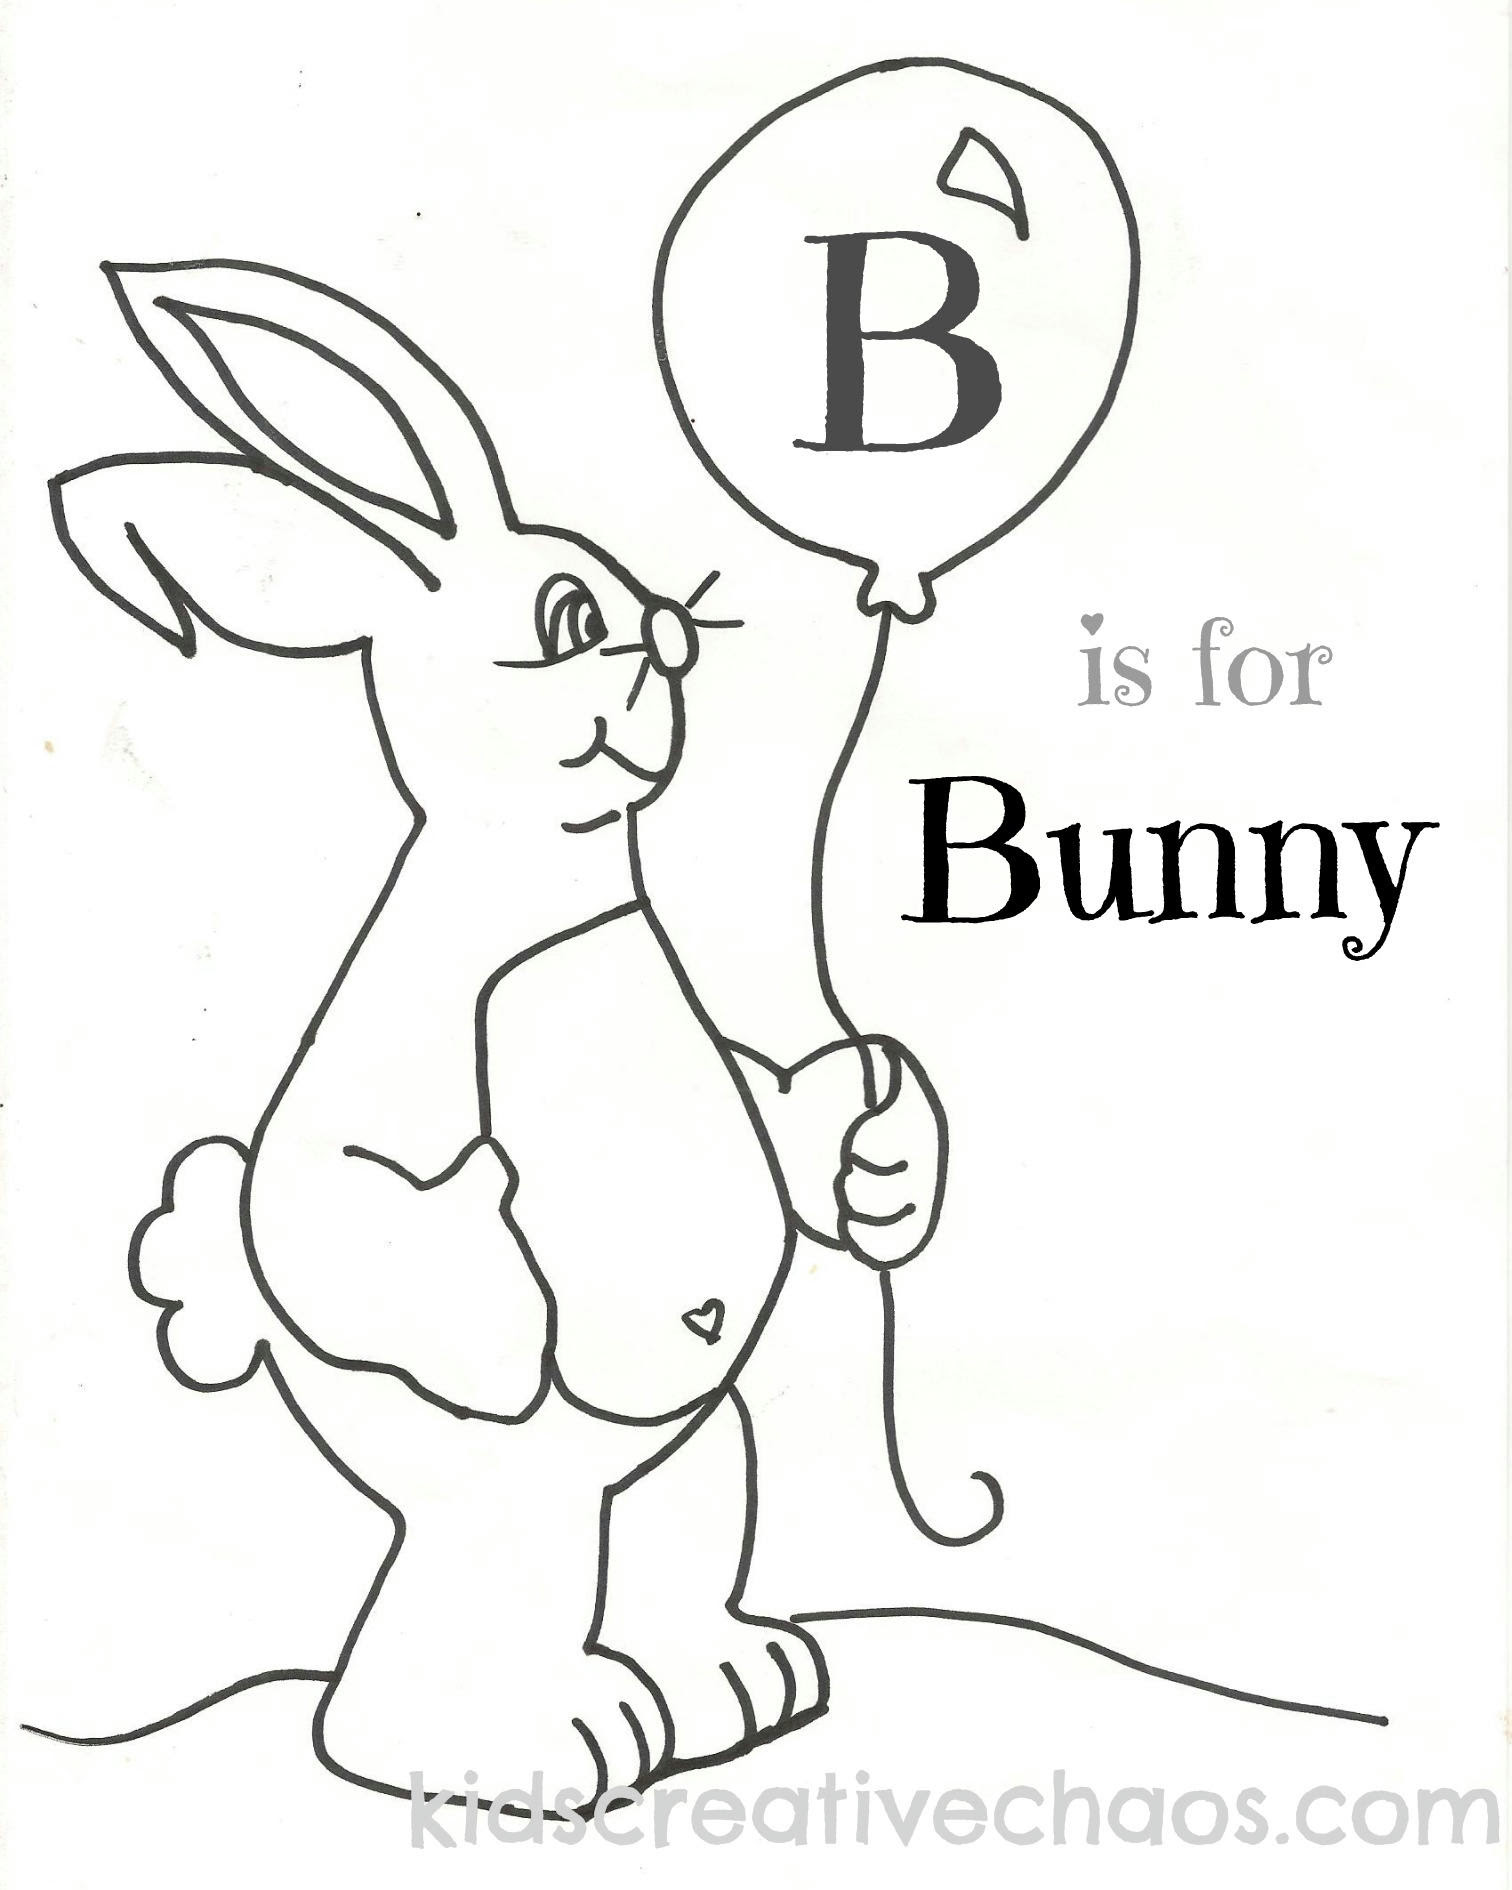 Letter B Coloring Sheets Pages Bunny Balloon for Easter